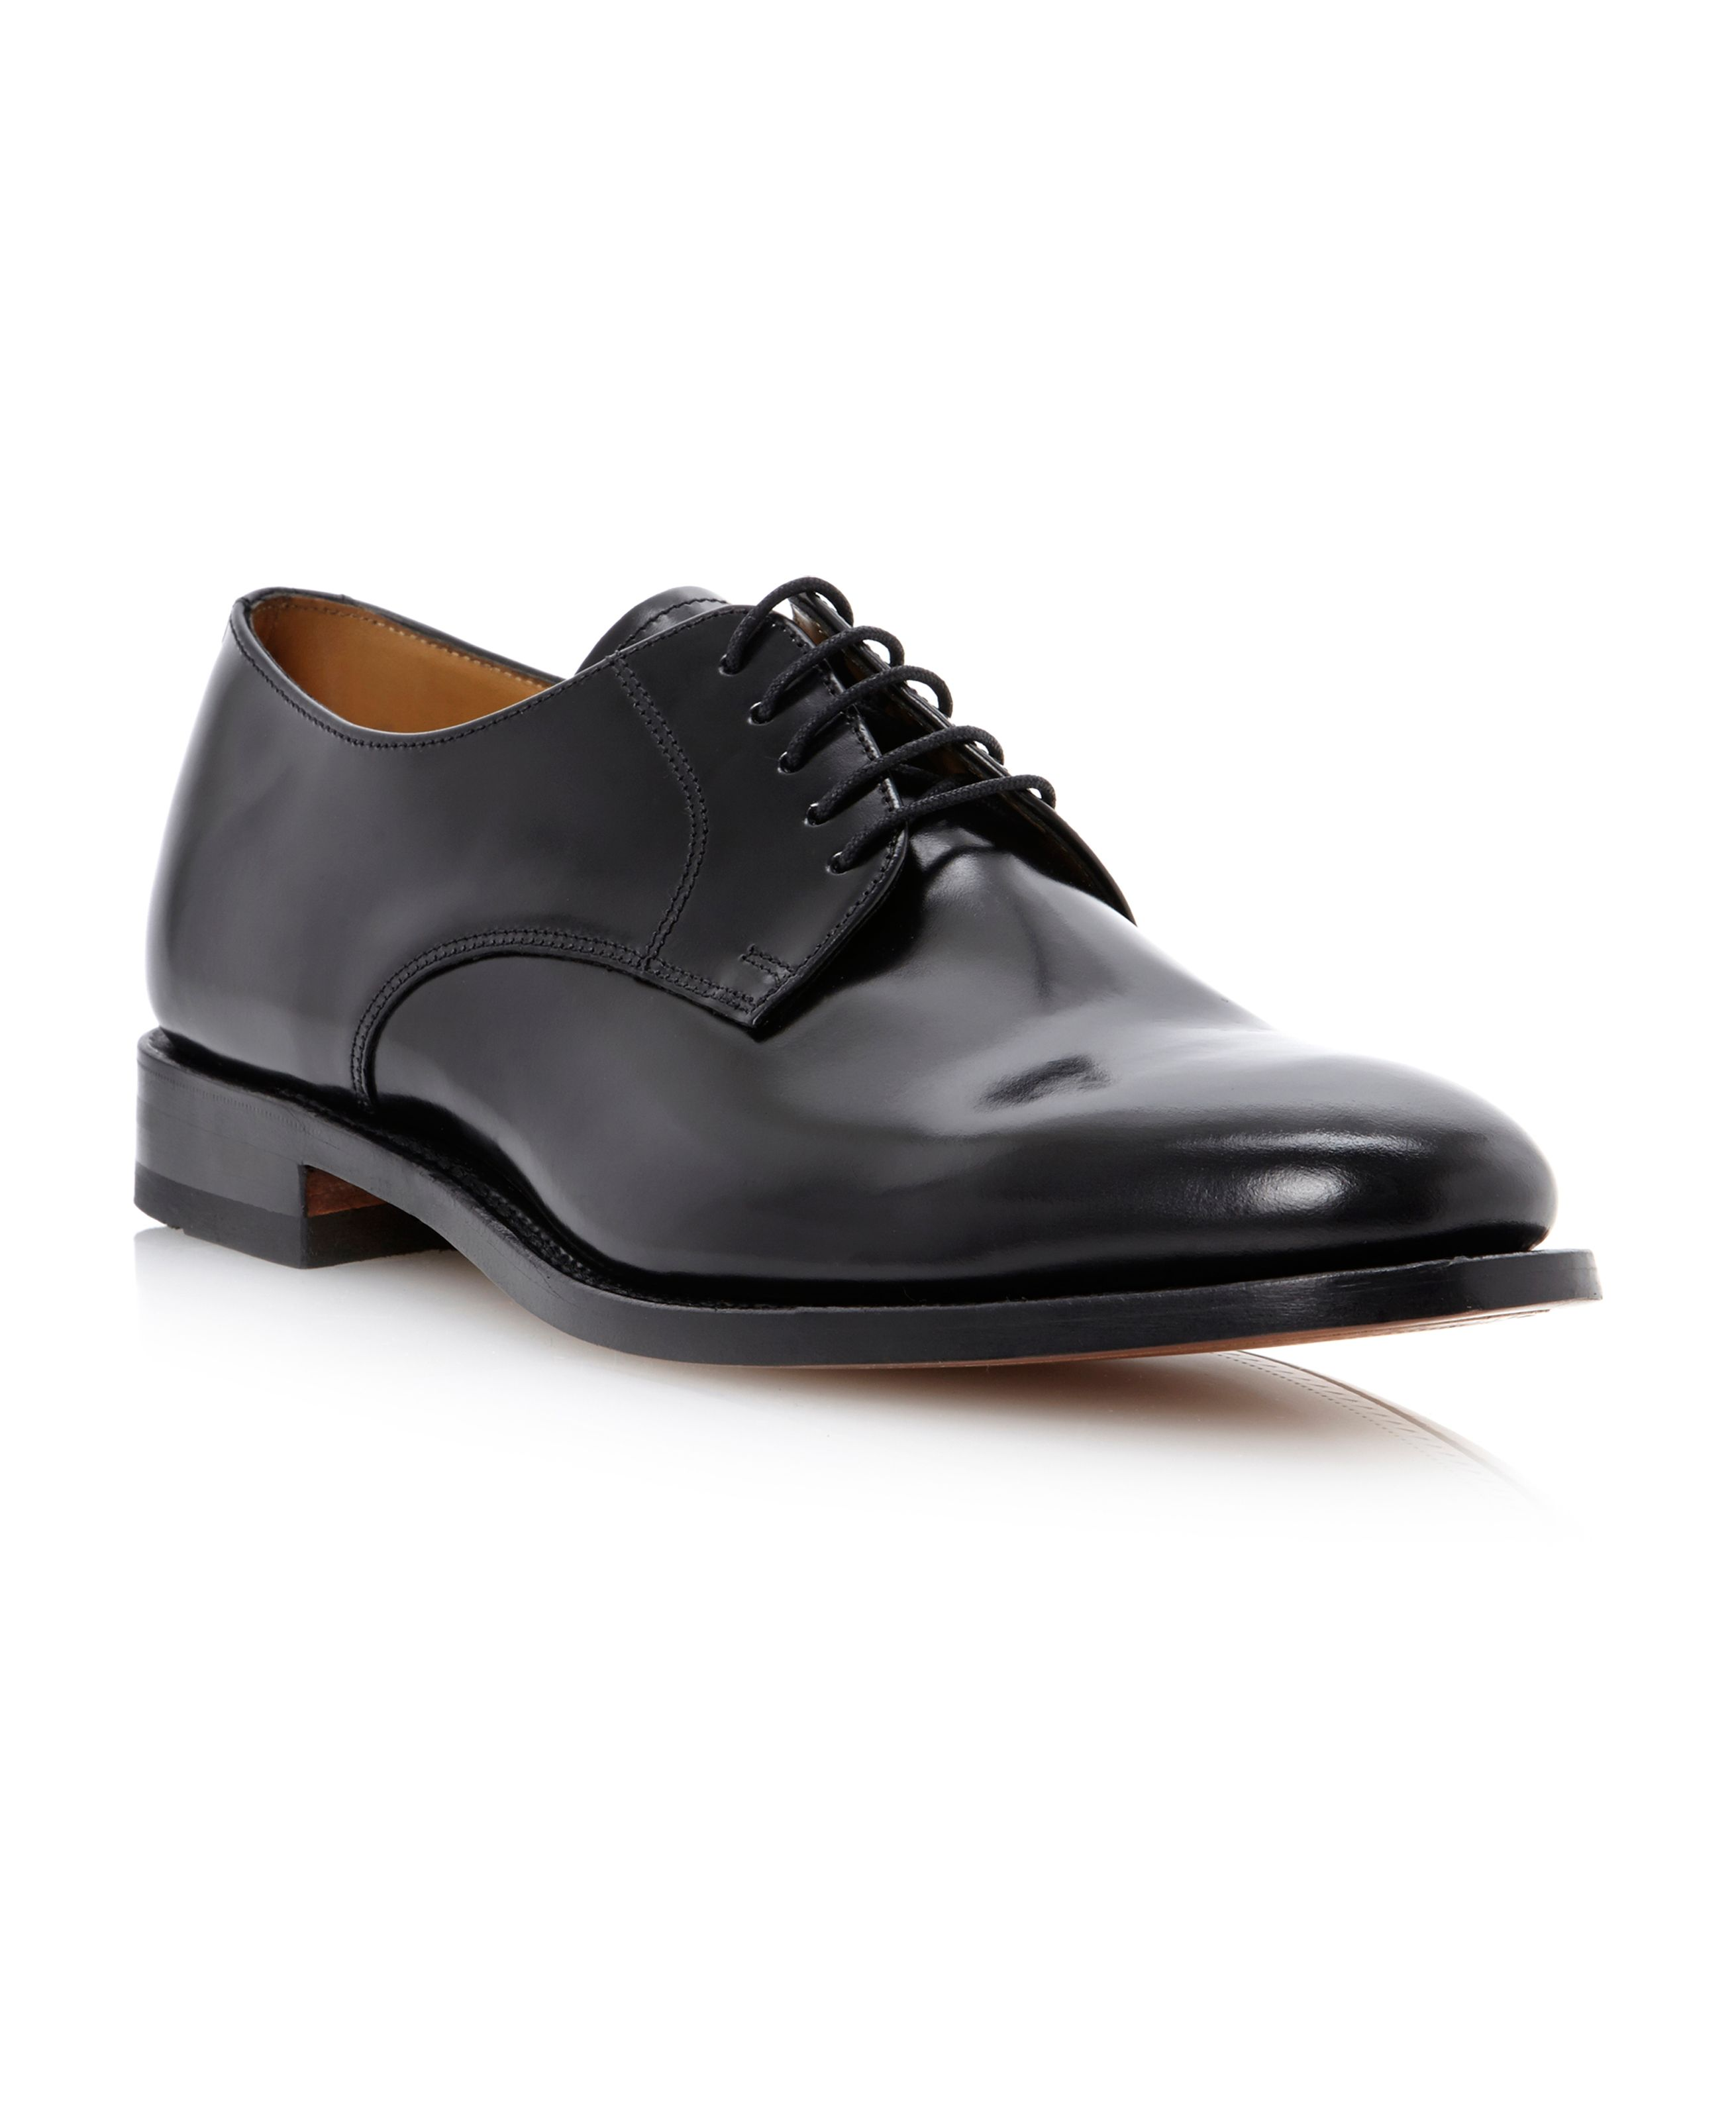 205B plain toe 5 eye lace gibson shoe